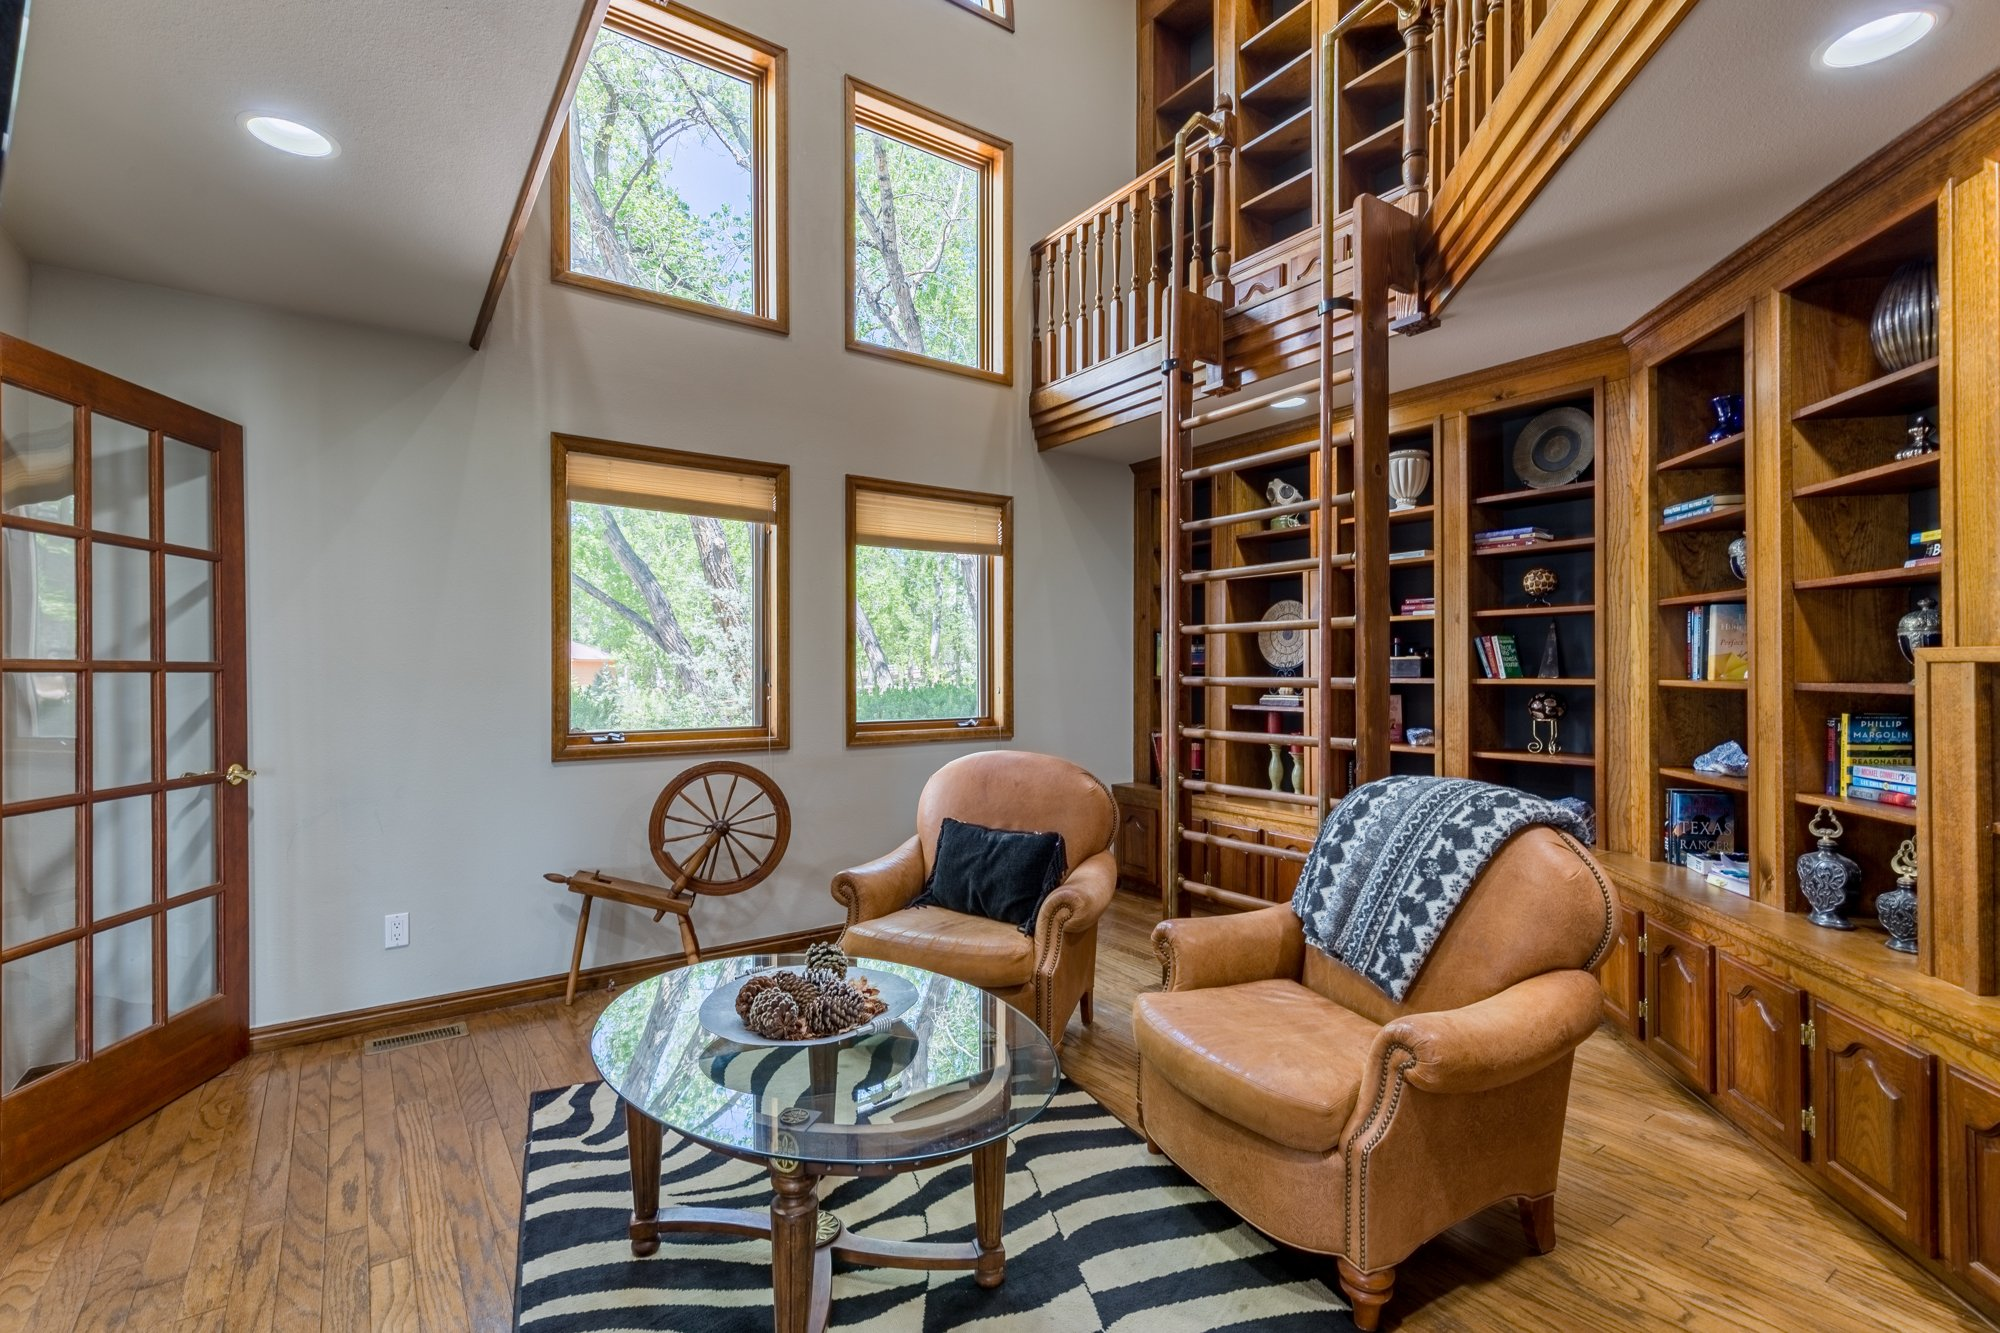 2 Story Library - 16955 Wildwood Dr. Montrose, CO 81403 - Atha Team Luxury Real Estate